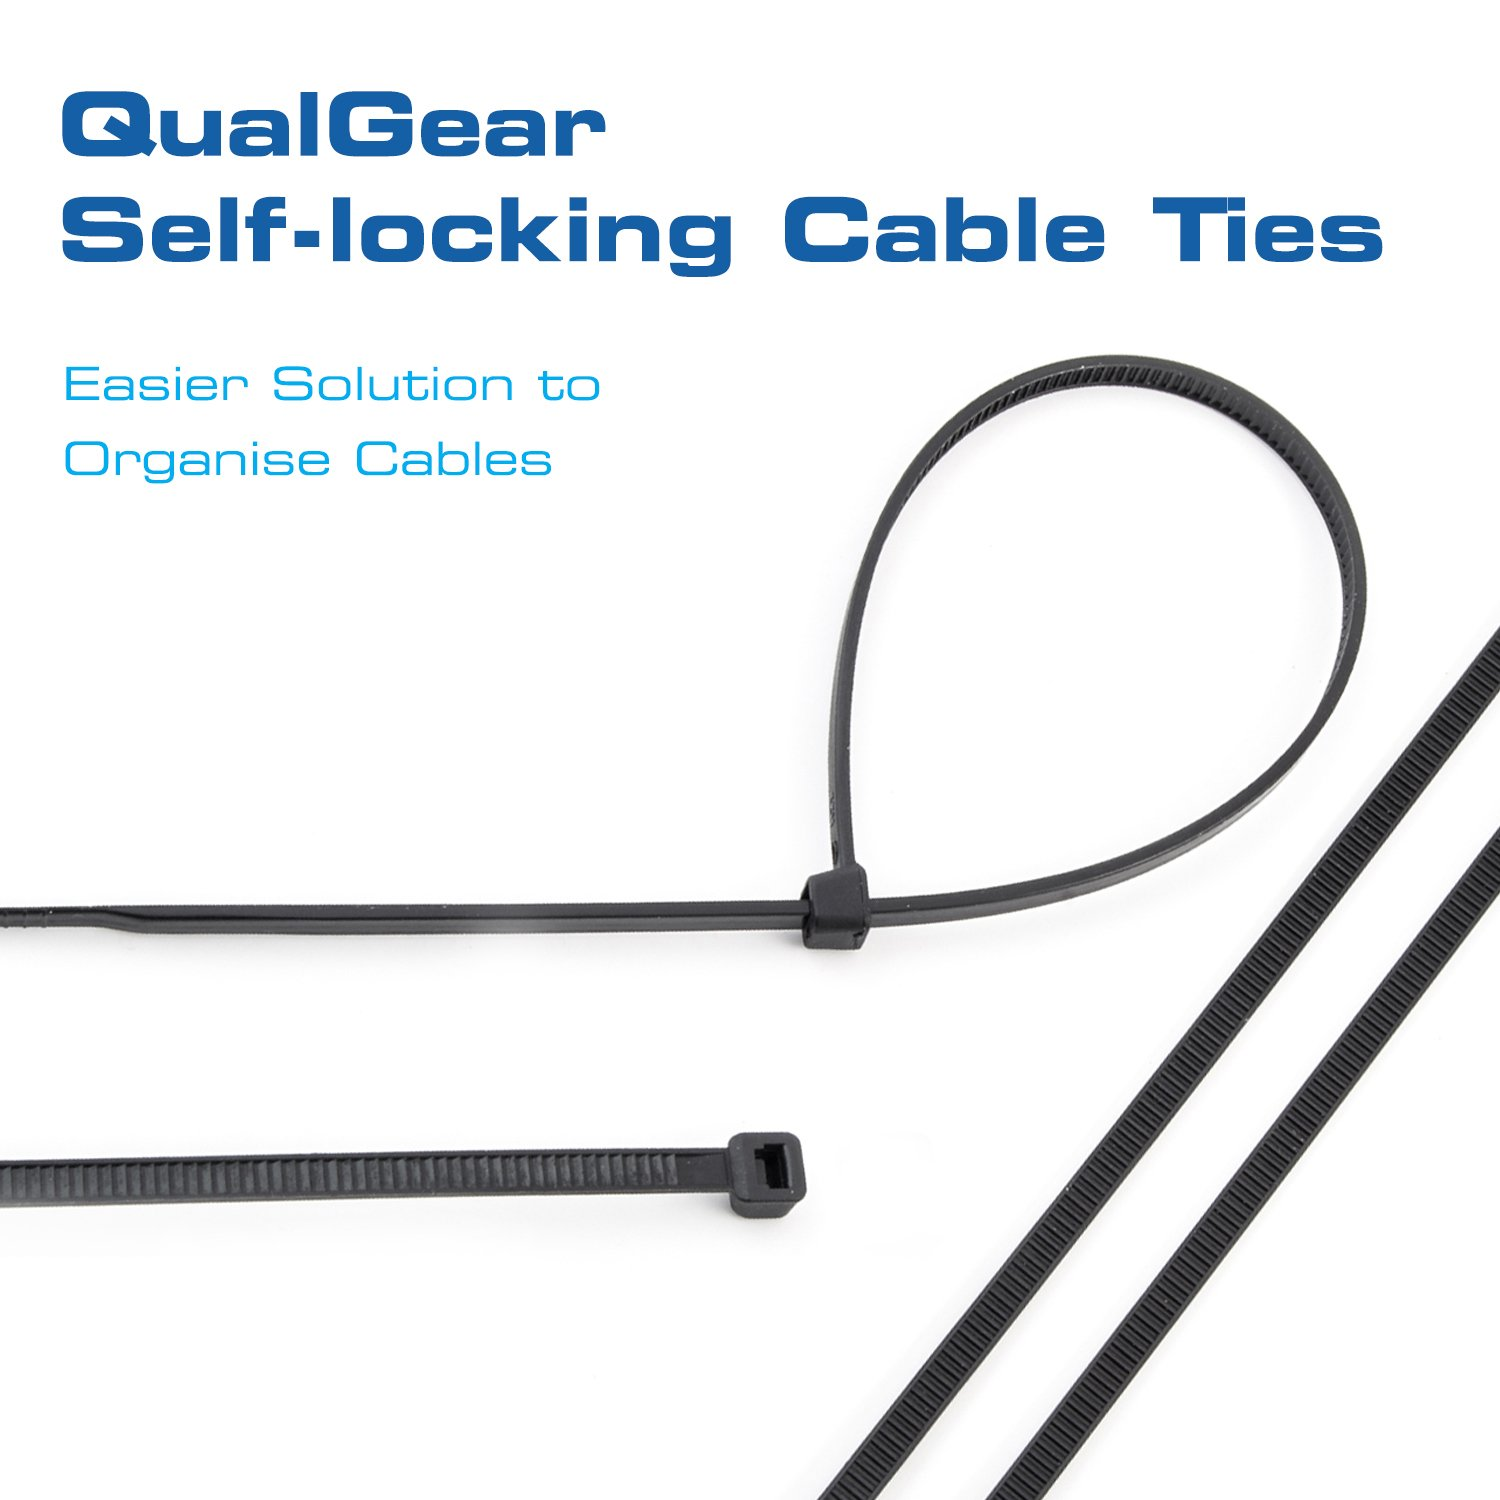 QualGear CT5-B-100-P Self-Locking Cable Ties, 8-Inch, Black 100/Poly Bag by QualGear (Image #2)